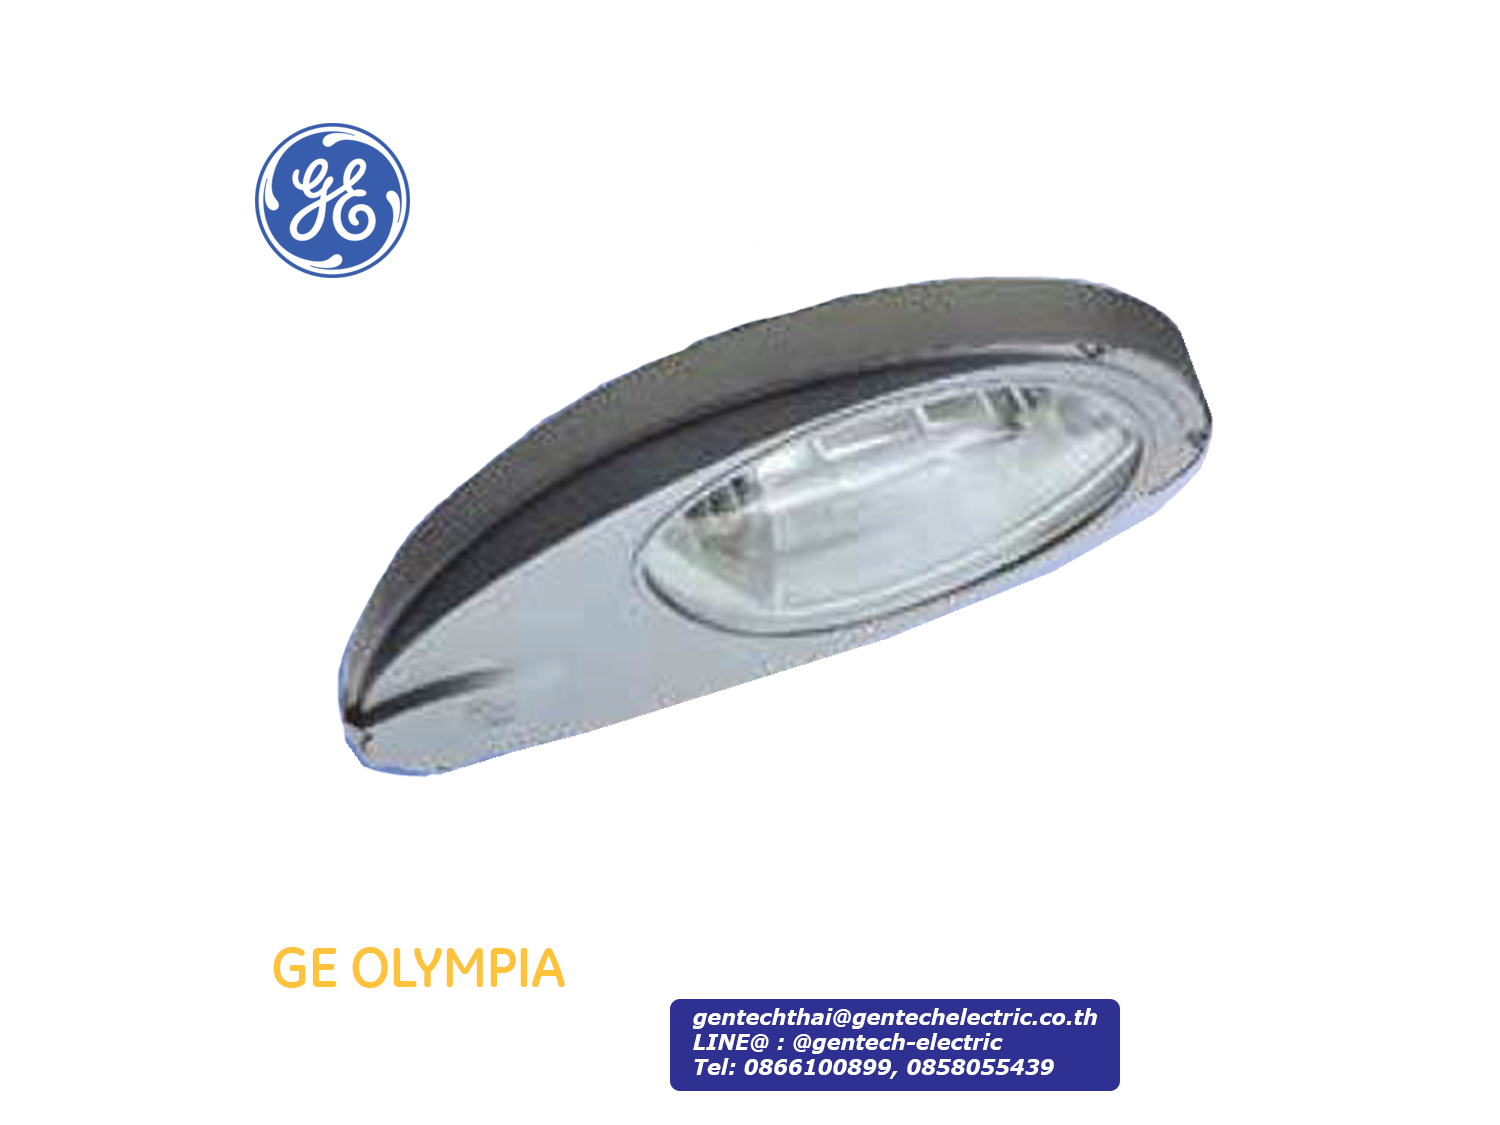 GE HPS Streetlight OLYMPIA 250W (100-400W optional); SKU: AF21262, OLY25AS8EADSG